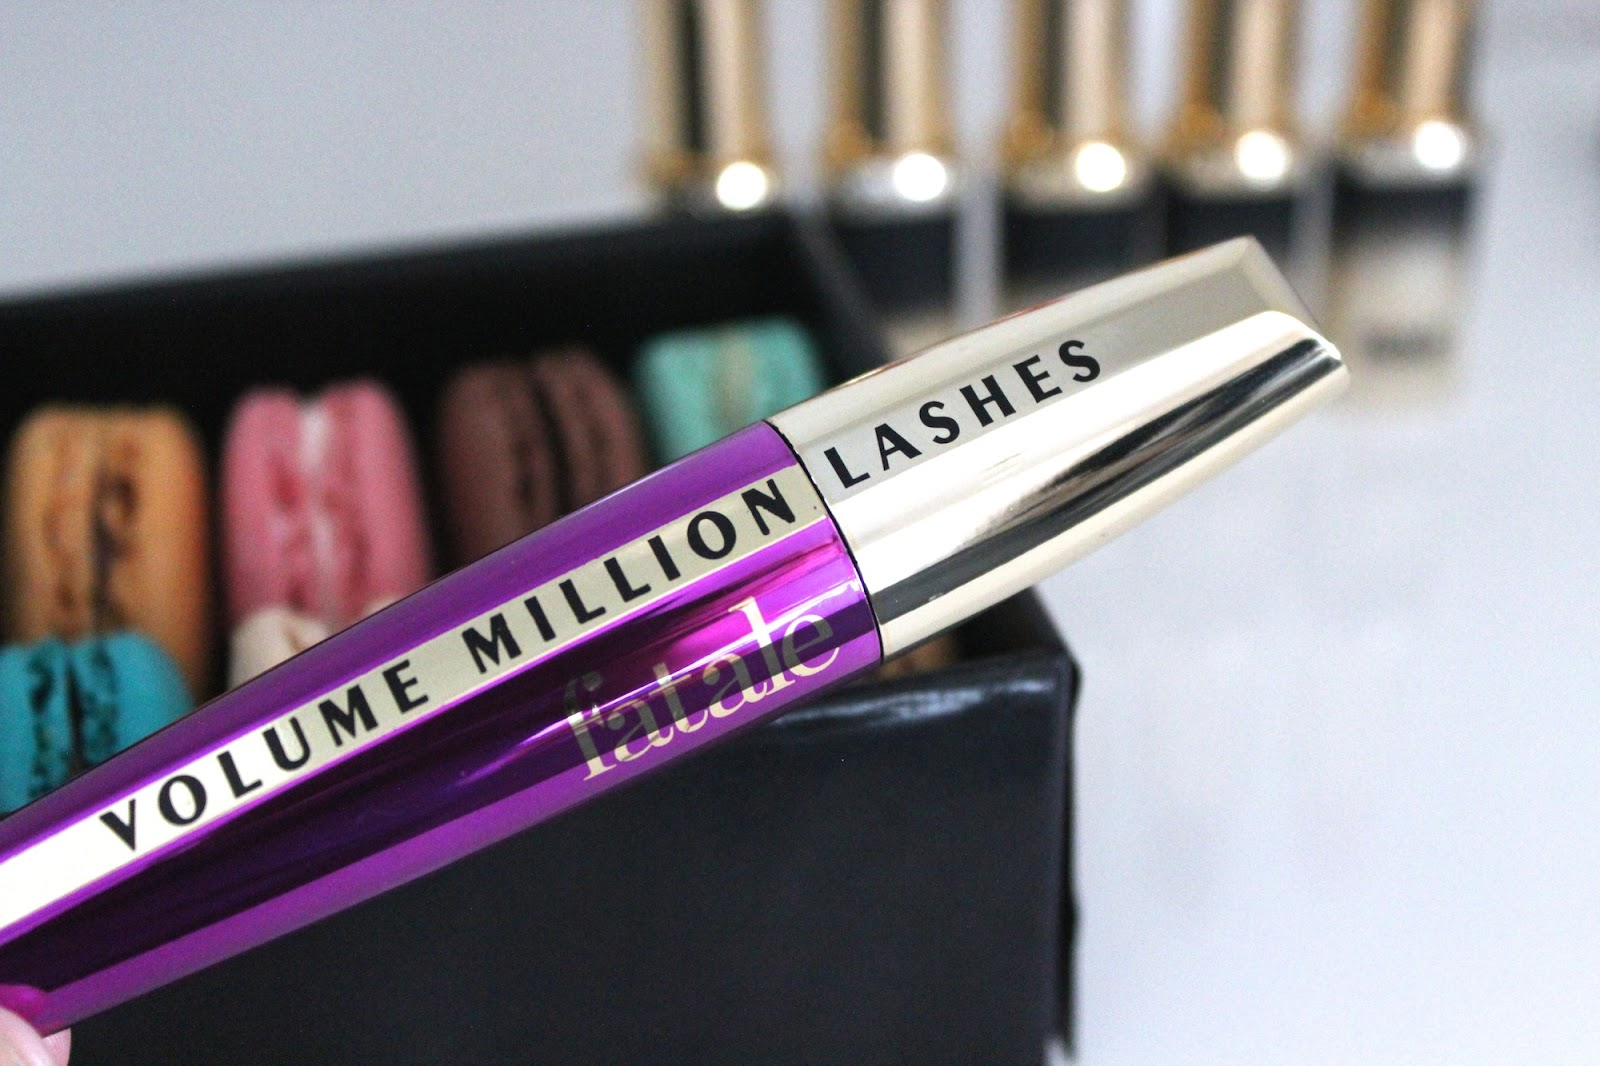 L'Oreal Paris Volume Million Lashes Fatale mascara